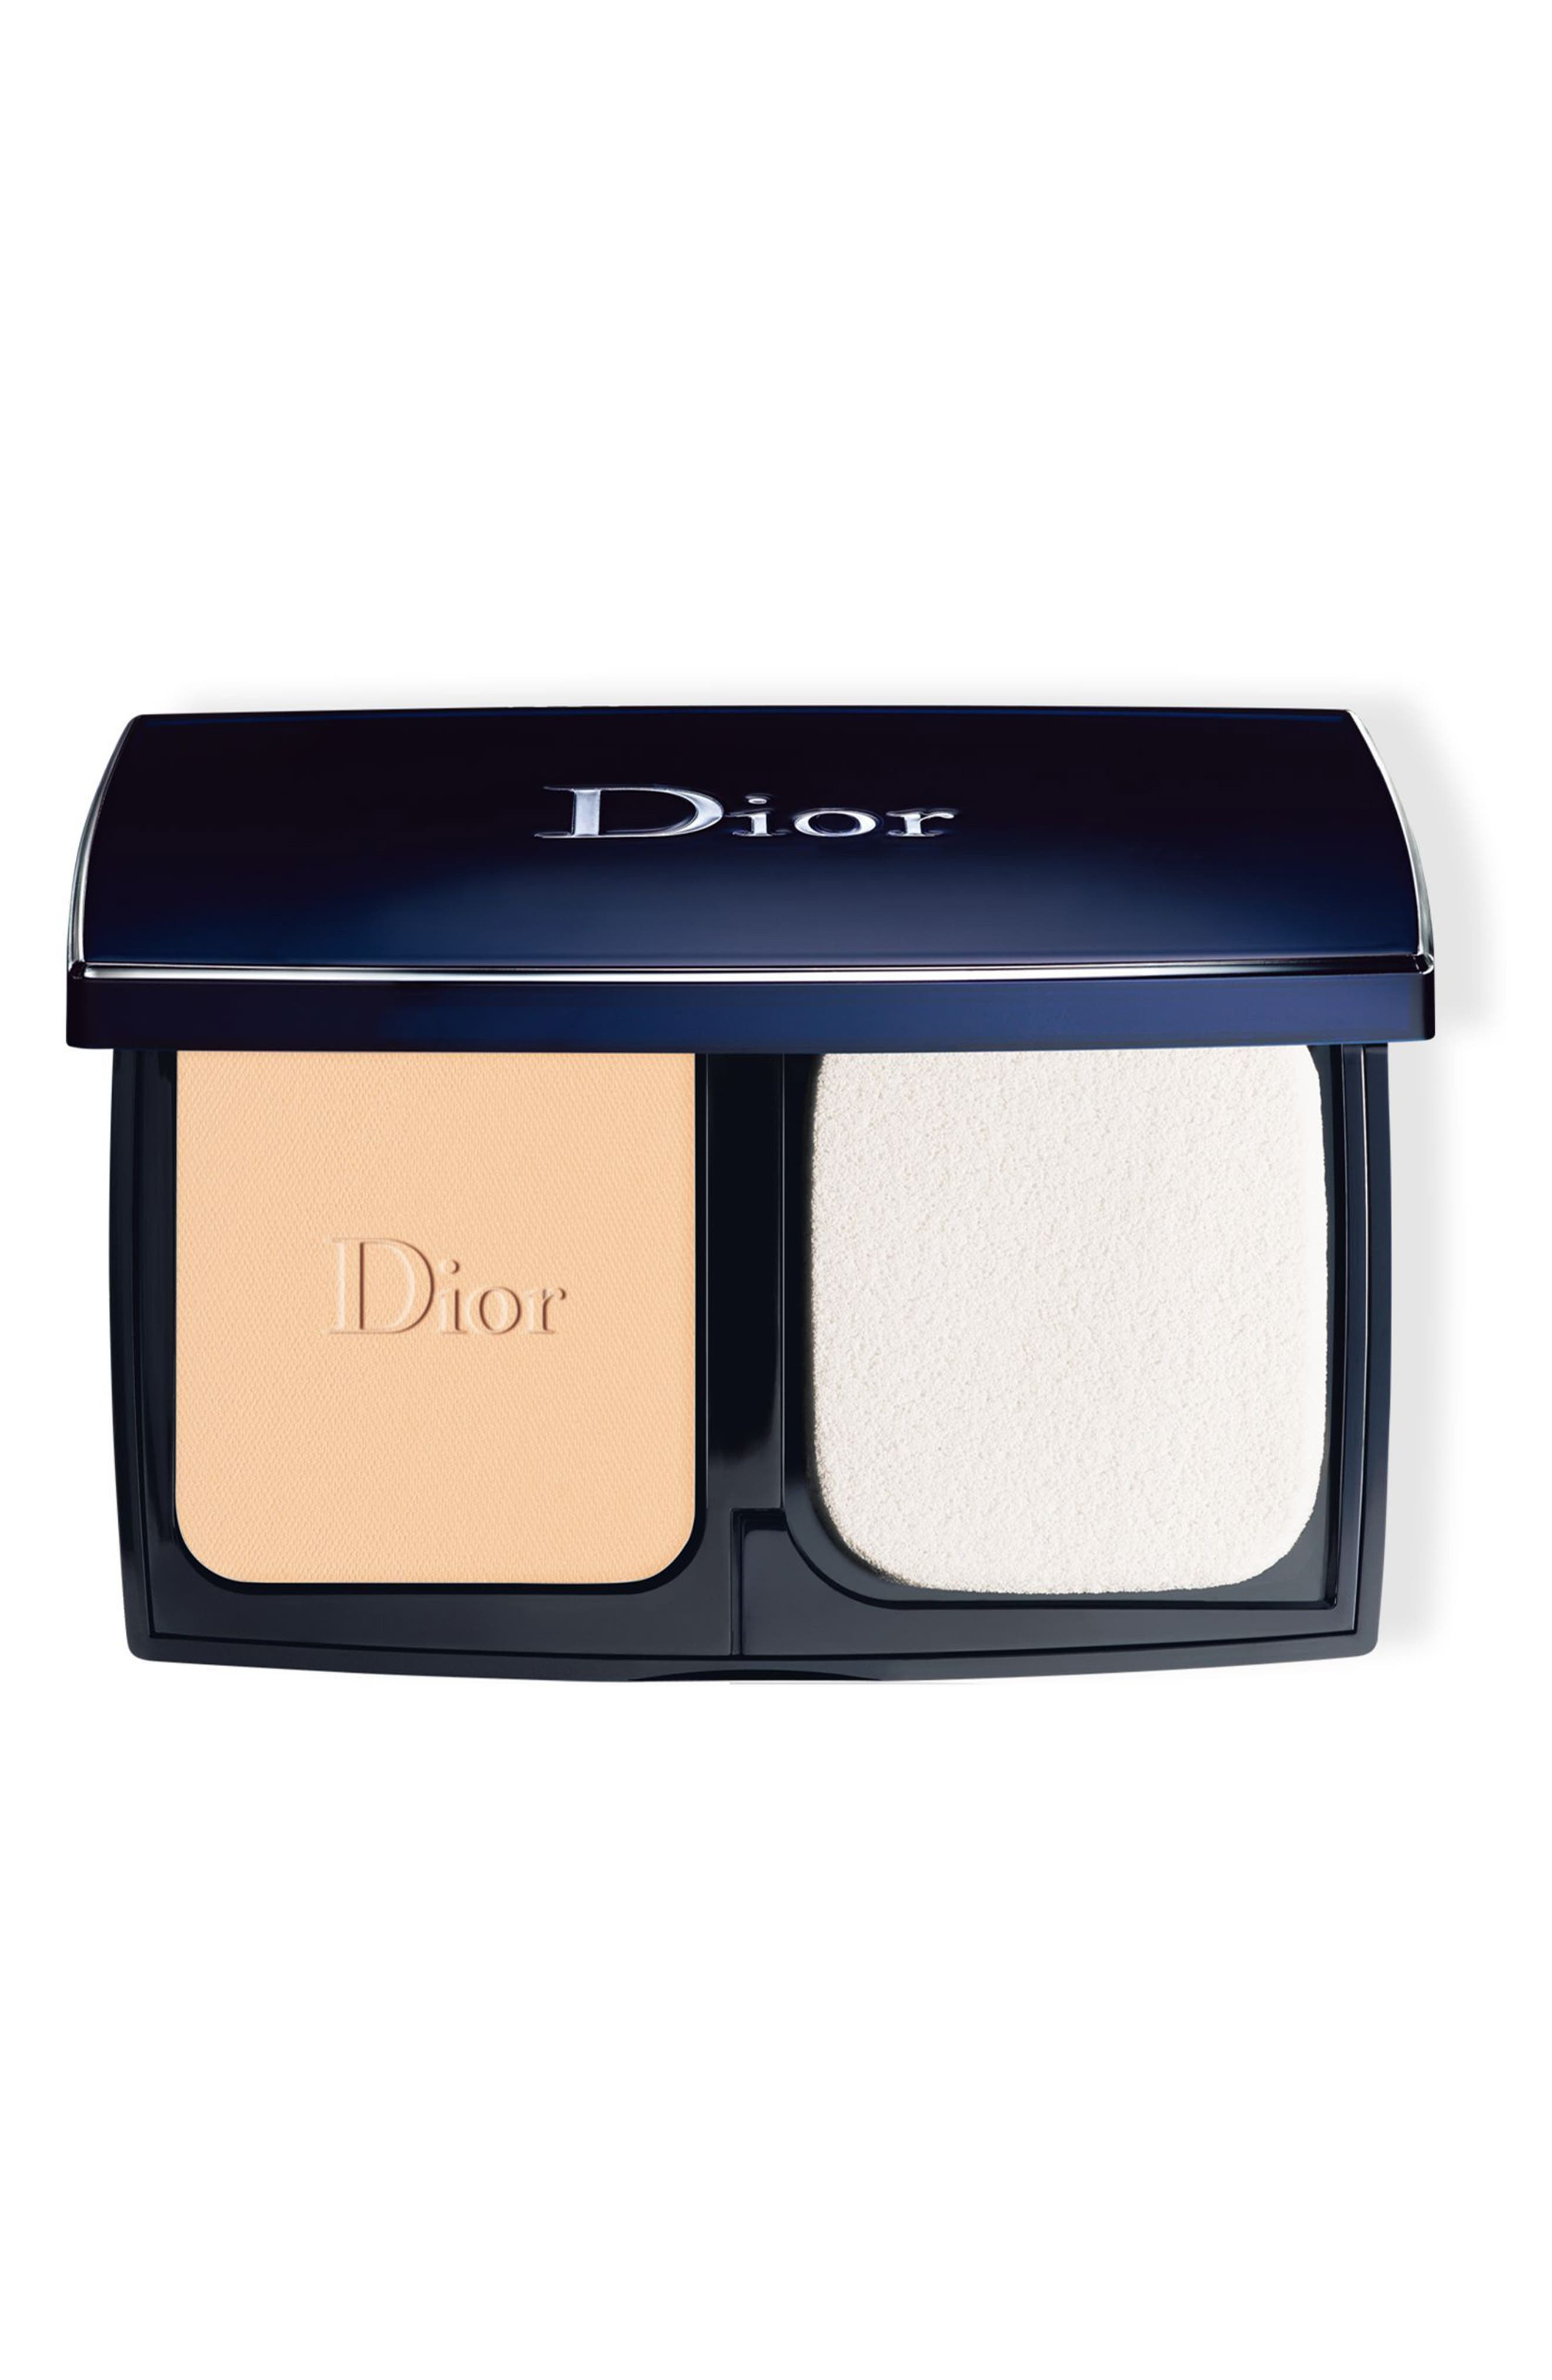 Diorskin Forever Flawless Perfection Fusion Wear Compact Foundation SPF 25,                             Main thumbnail 1, color,                             010